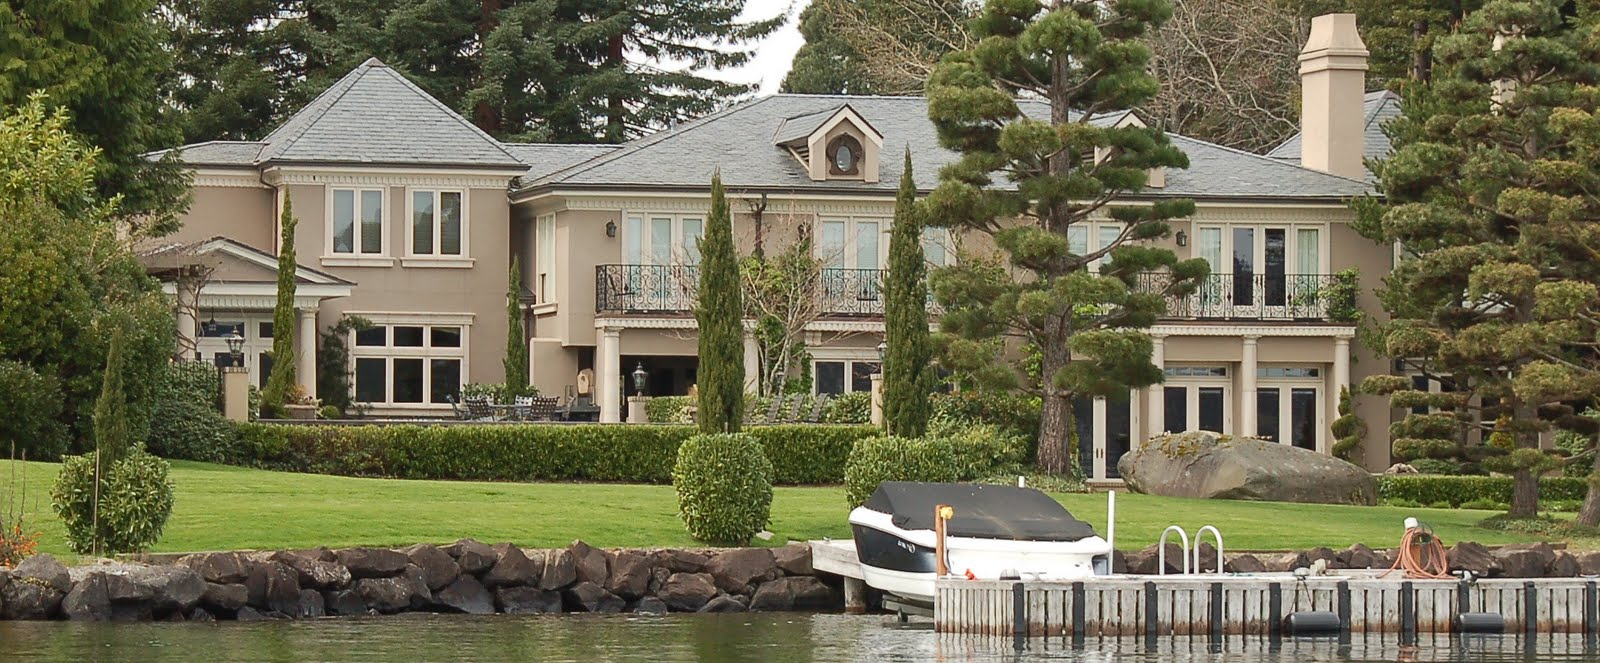 Seattle mansions russo hunts point mansion sells for 11 for Most expensive house in washington state